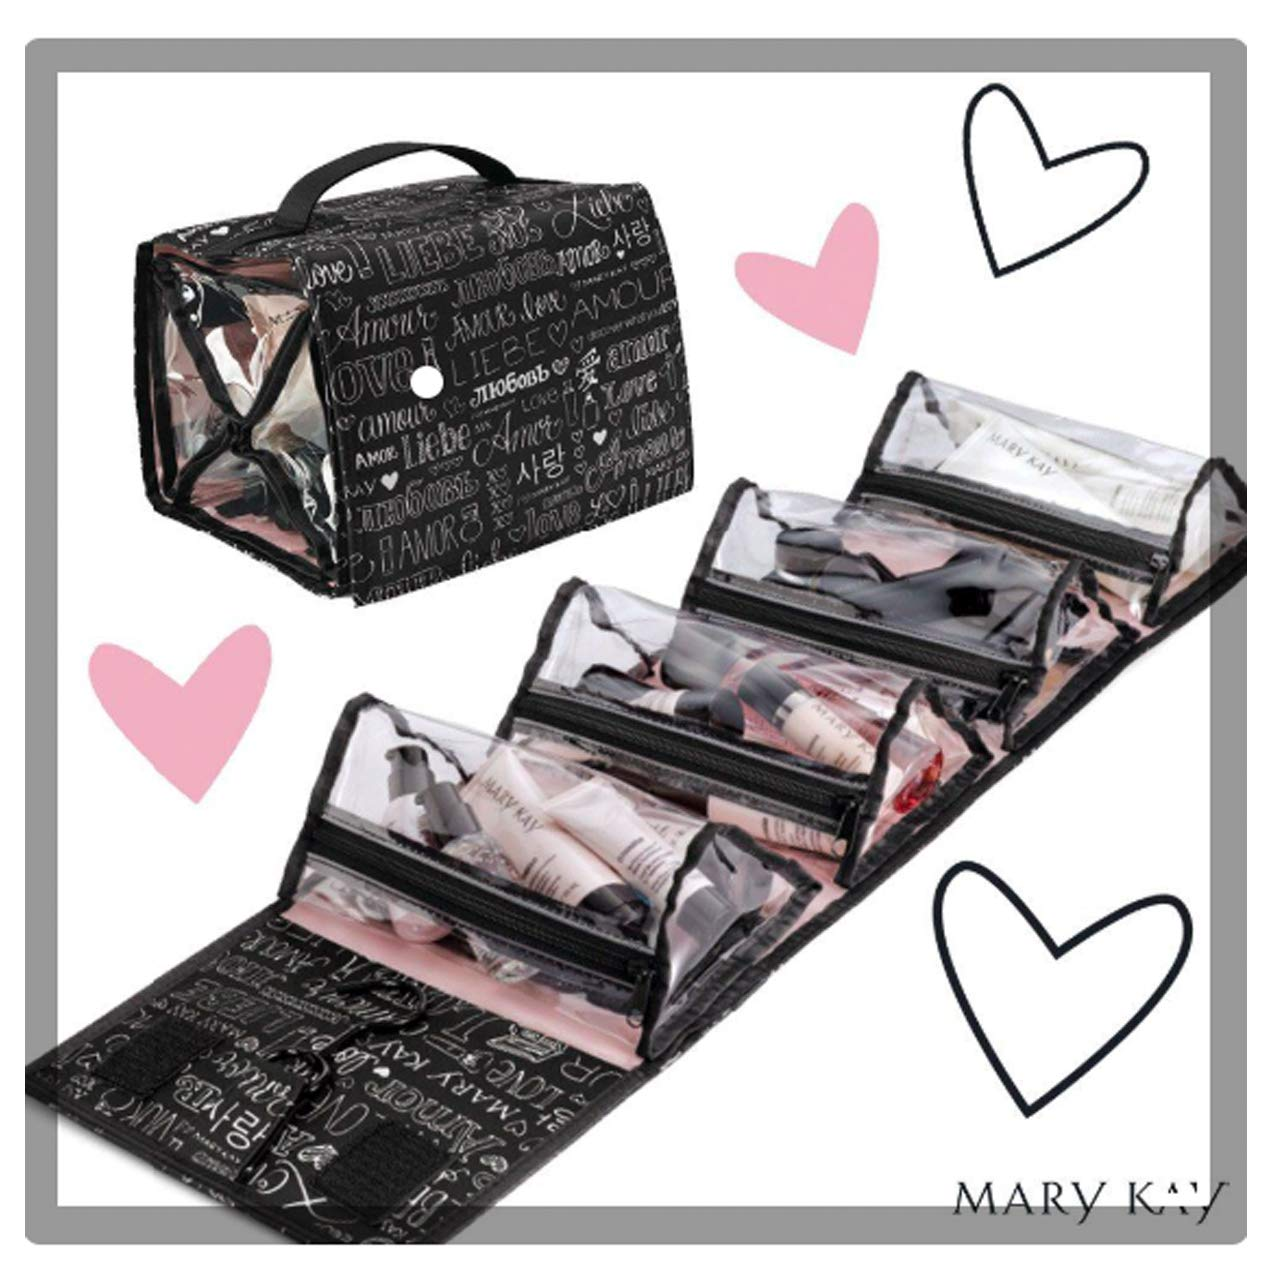 Amazon.com : Mary Kay Travel Roll up Bag 4 Removable Pouches : Mary Kay Makeup Bag : Beauty